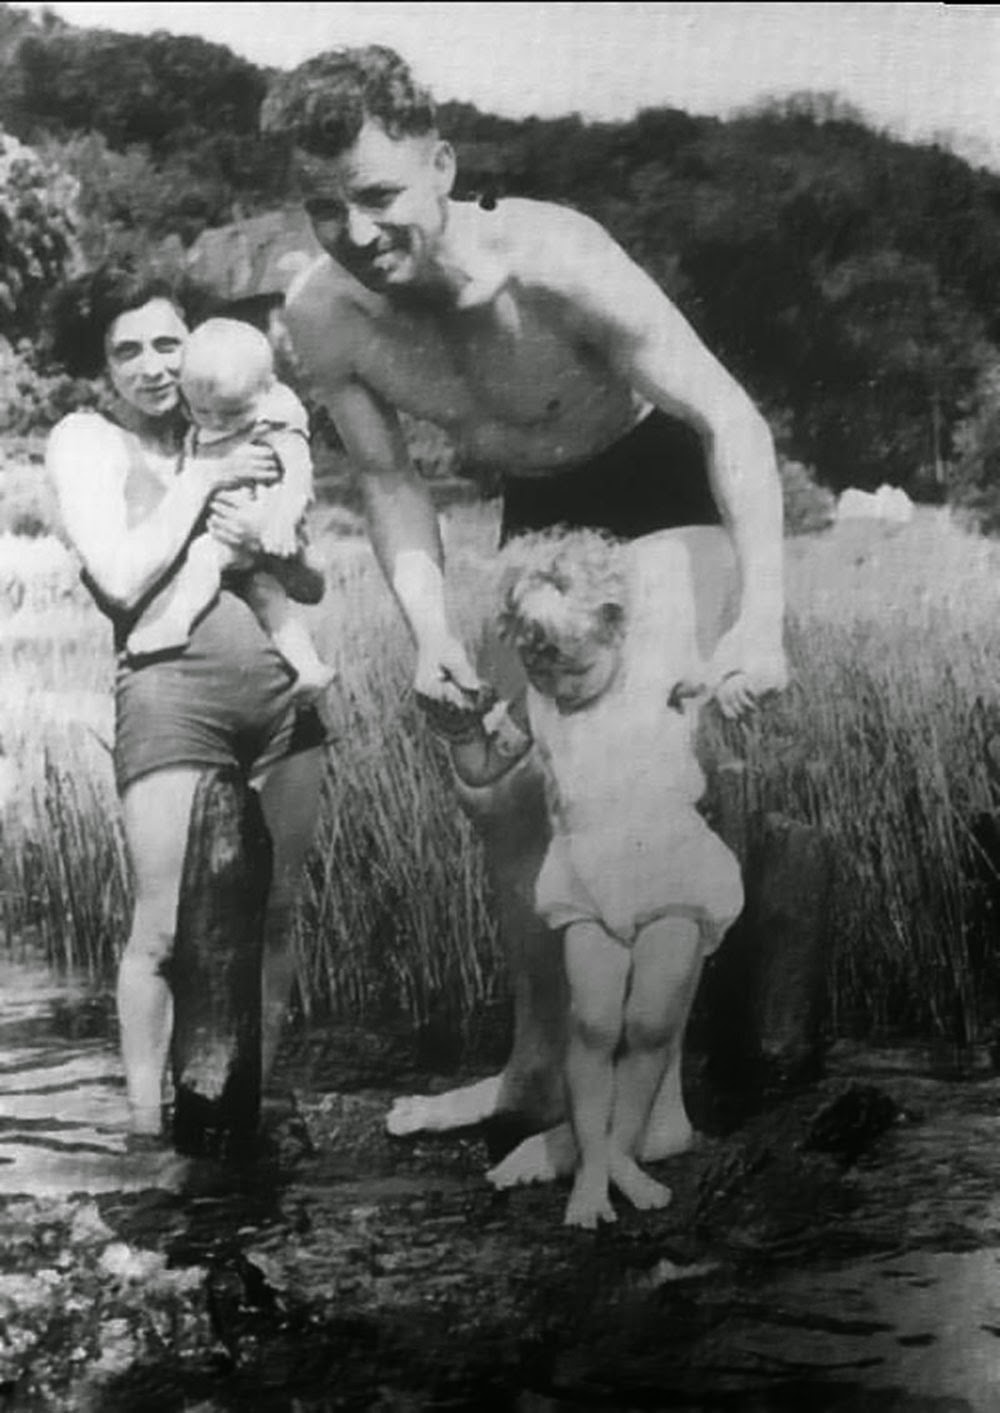 The first and only photo of the family, June 1938. Although it was forbidden for them to meet, they appeared together in public and put themselves at exceptional risk.